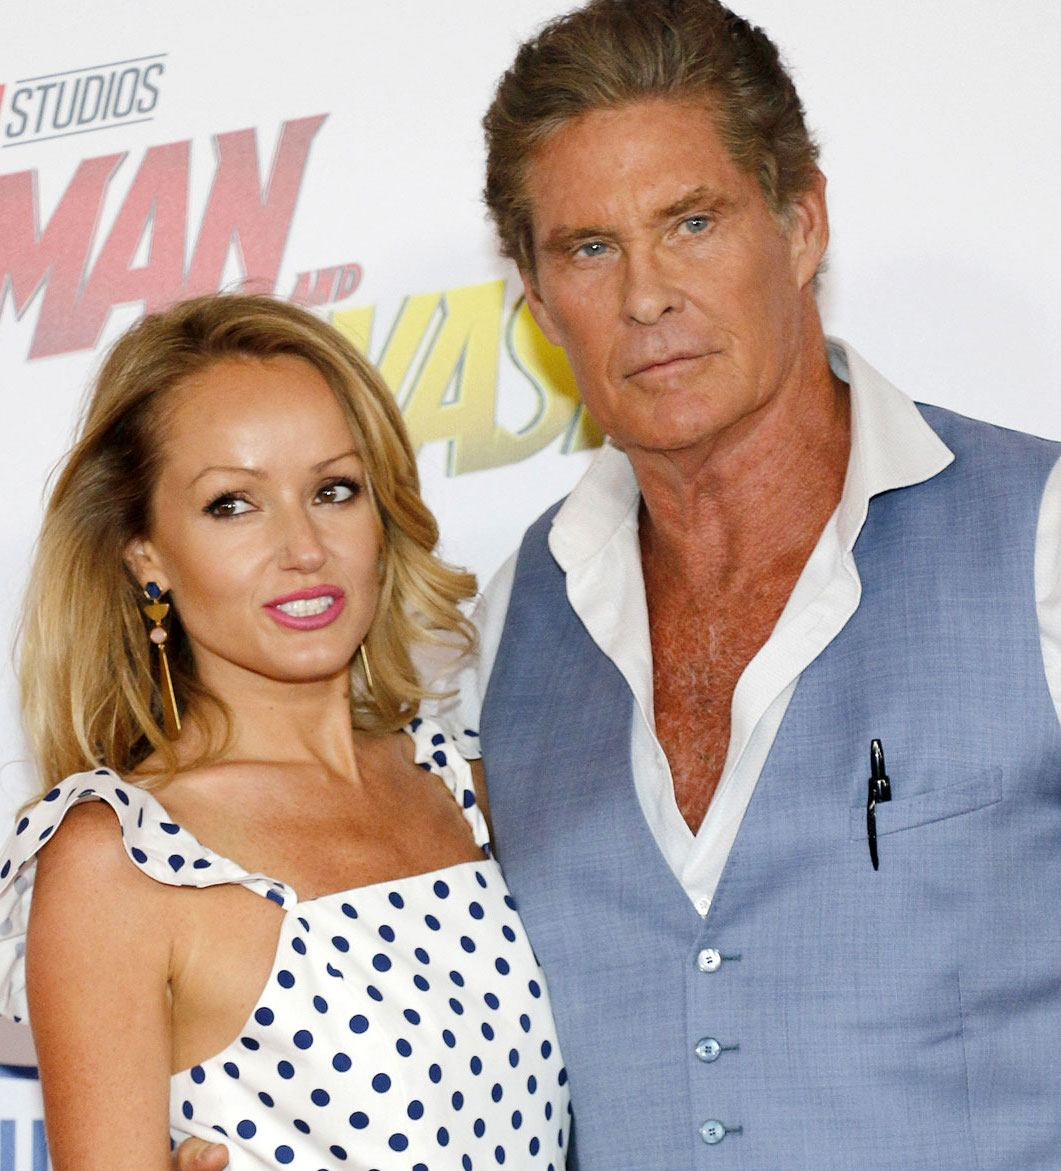 David Hasselhoff Hayley Roberts third wife Ant-Man and the Wasp premiere